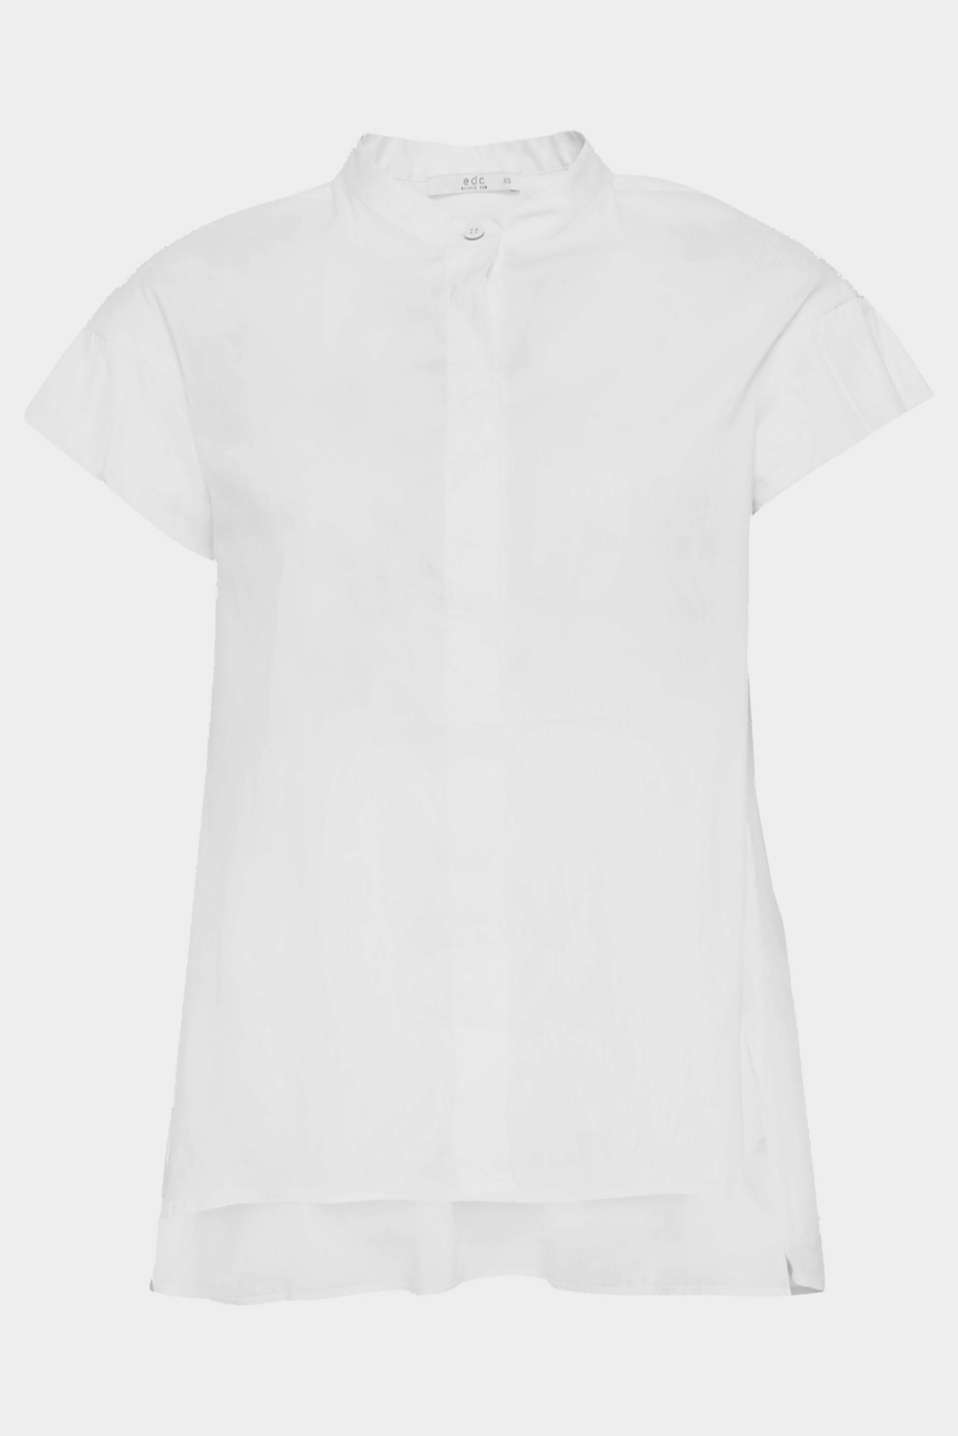 How to make a white blouse super trendy: give it a subtle stand-up collar, a concealed button placket, short flounce sleeves and a high-low hem!